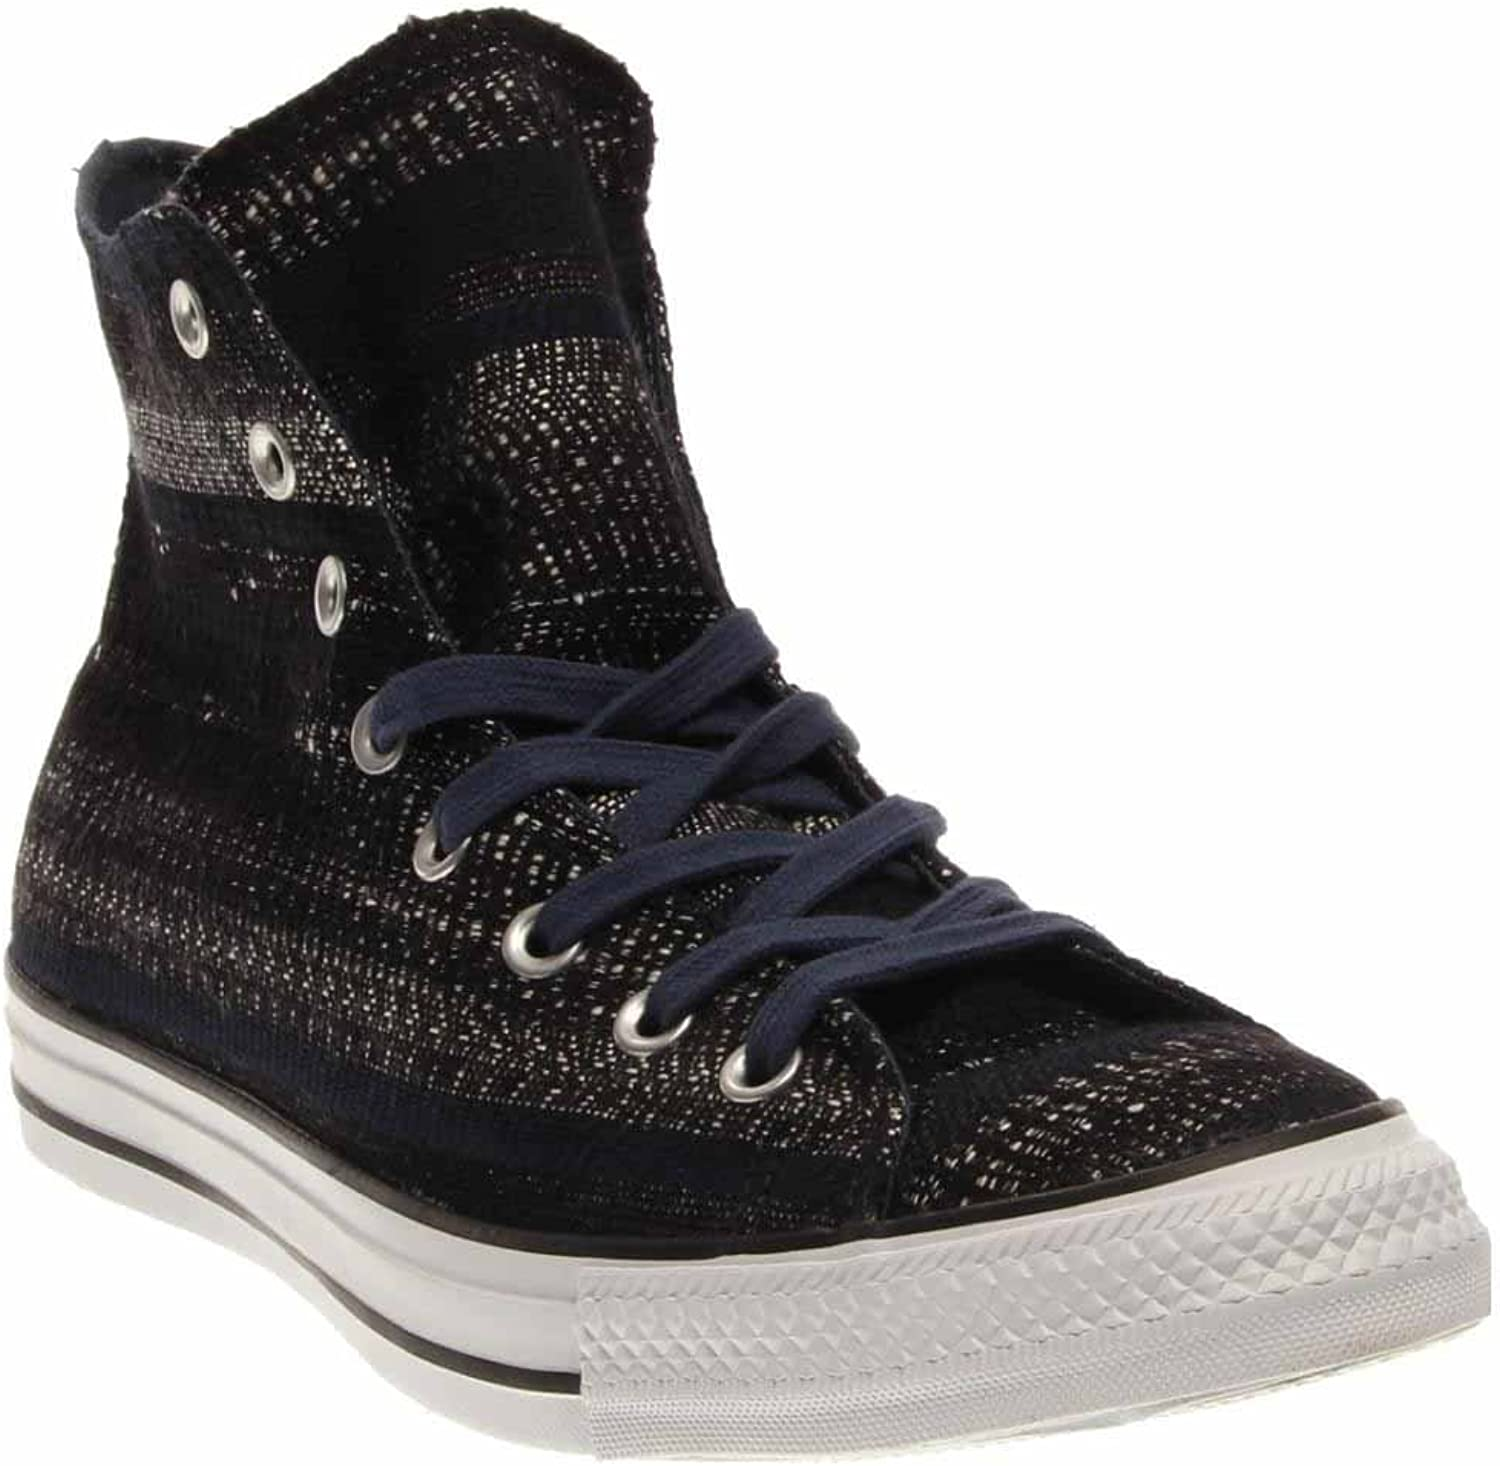 Converse Mens Chuck Taylor All Star High Top Casual Athletic & Sneakers bluee